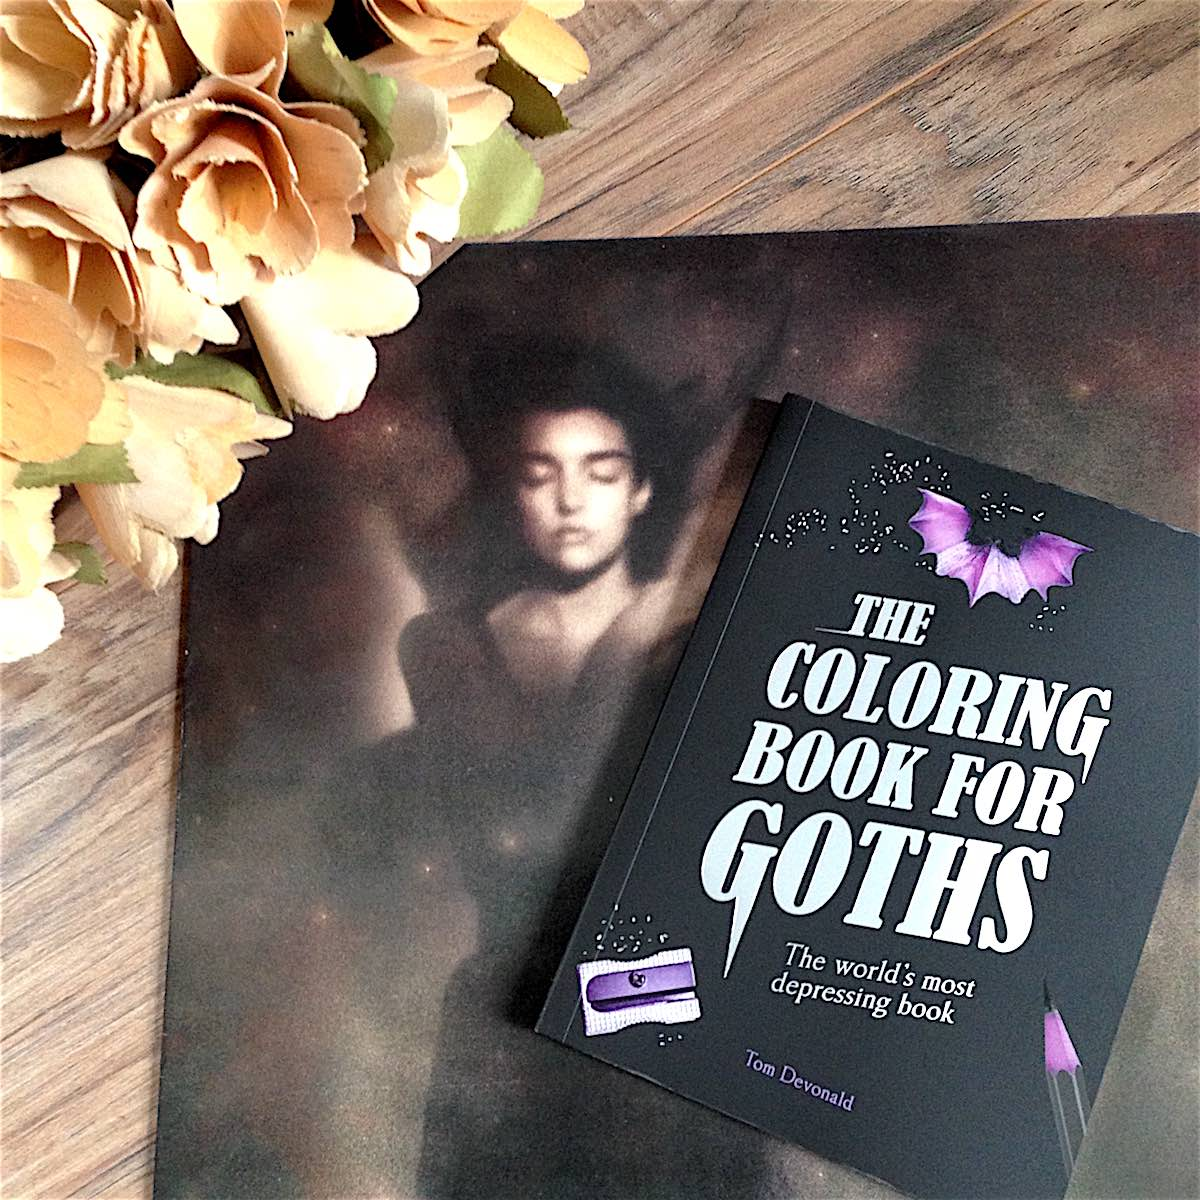 The Coloring Book For Goths Because Goths And Former Goths Can